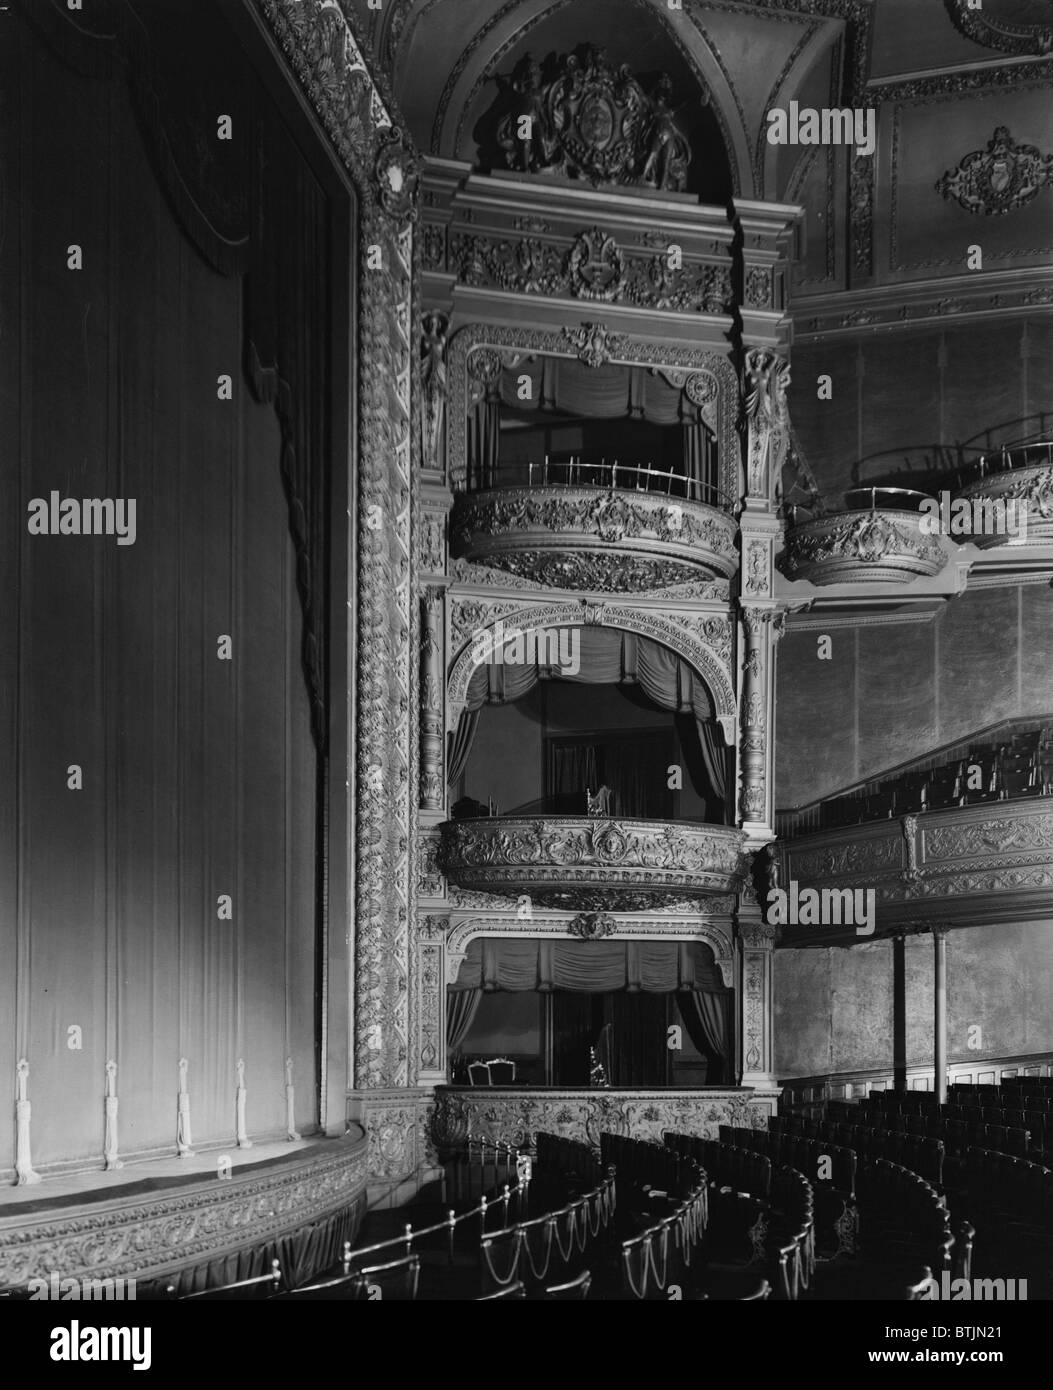 The Hollis Street Theater, auditorium and balconies, constructed in 1885, photograph by Arthur C. Haskell, Hollis - Stock Image